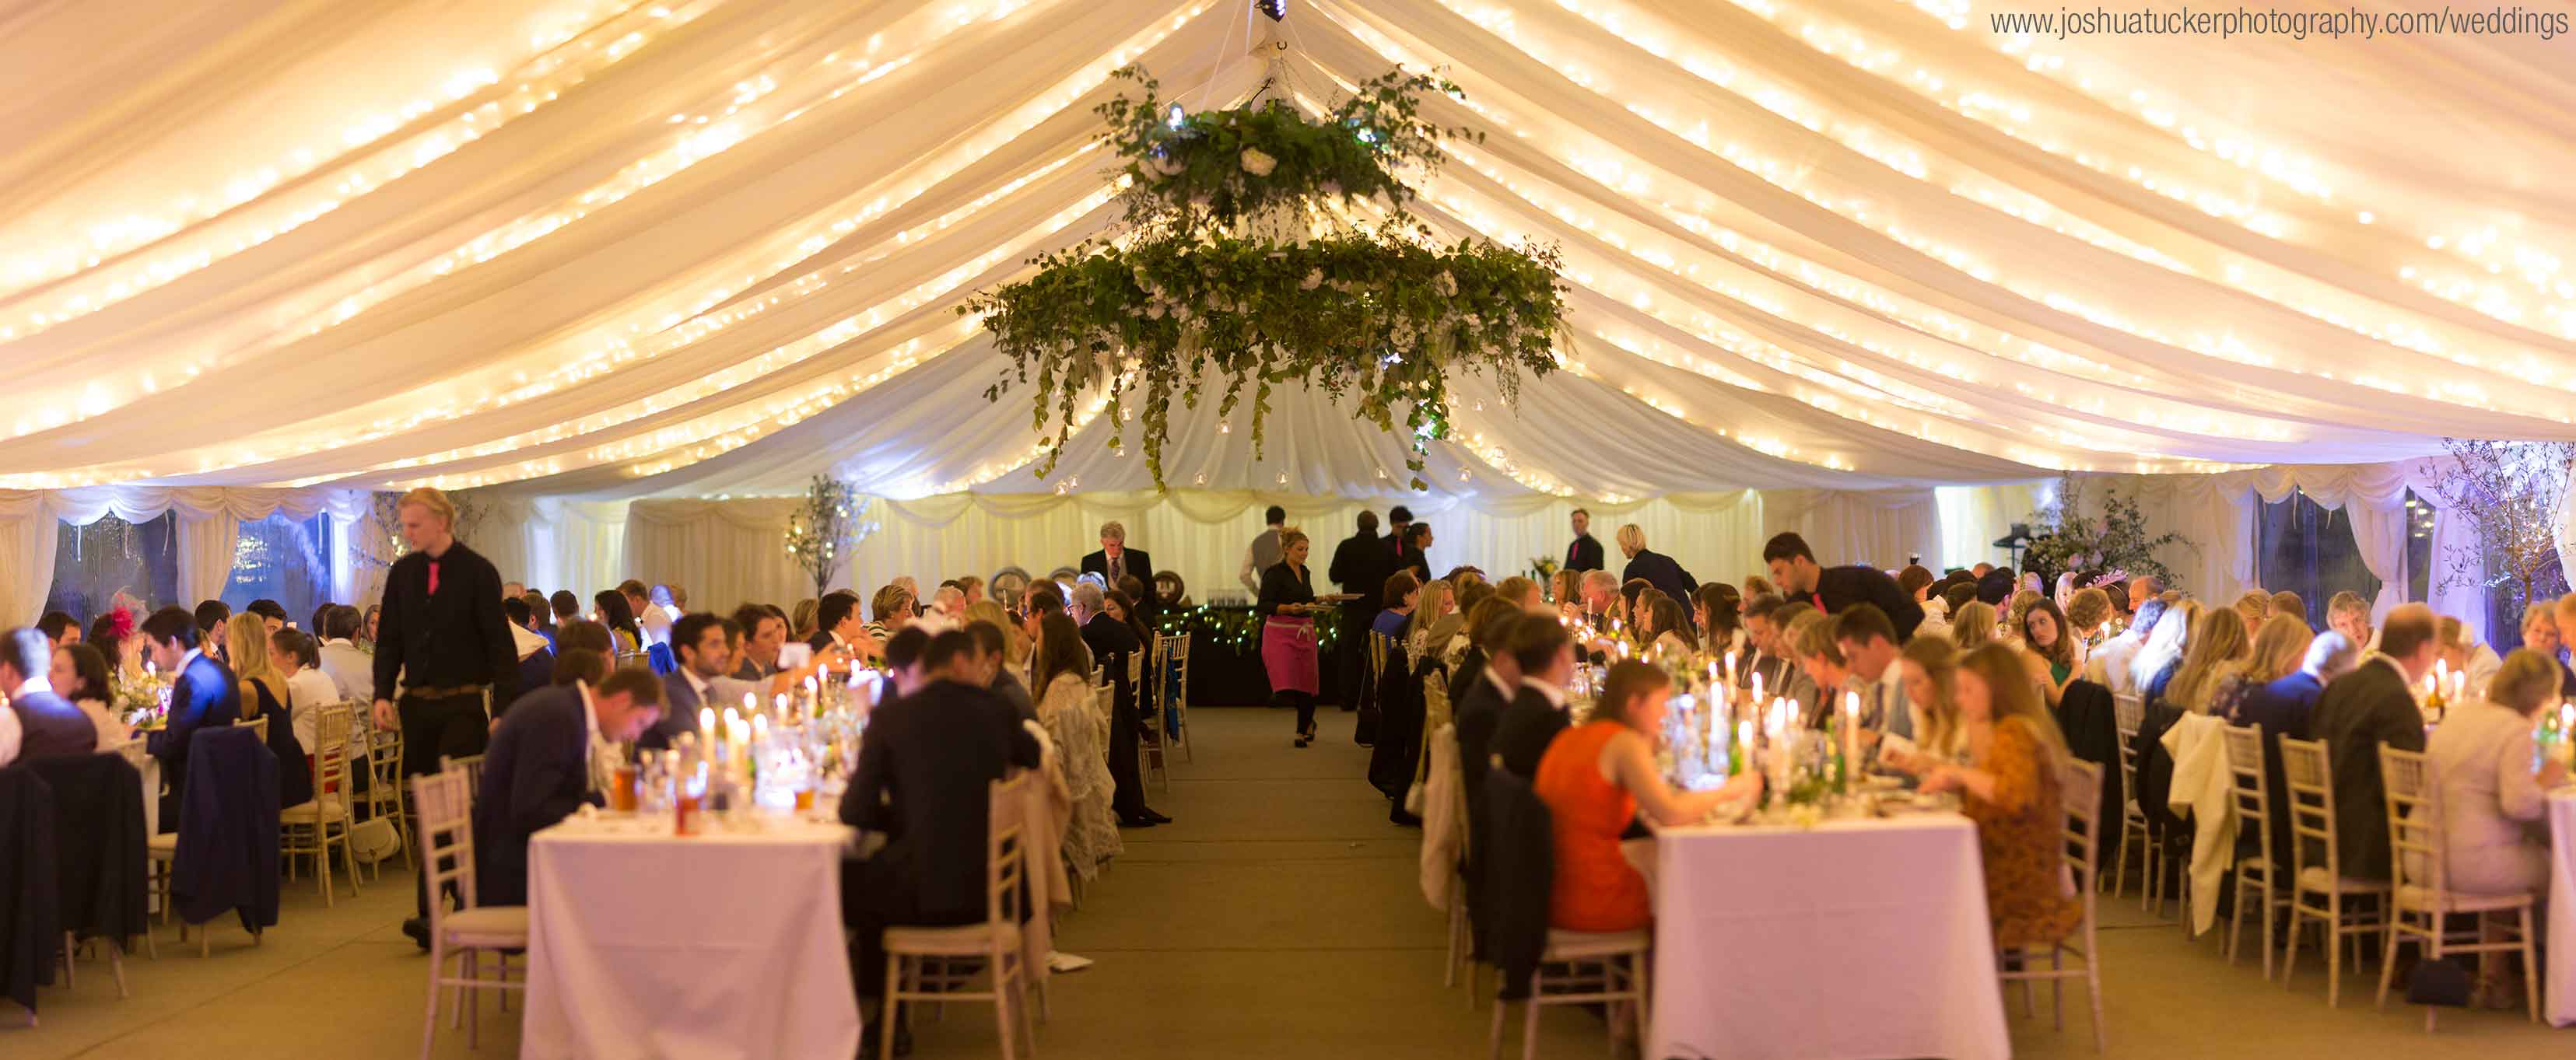 Carron marquees wedding marquee hire based out of surrey carron marquees marquee hire surrey junglespirit Gallery